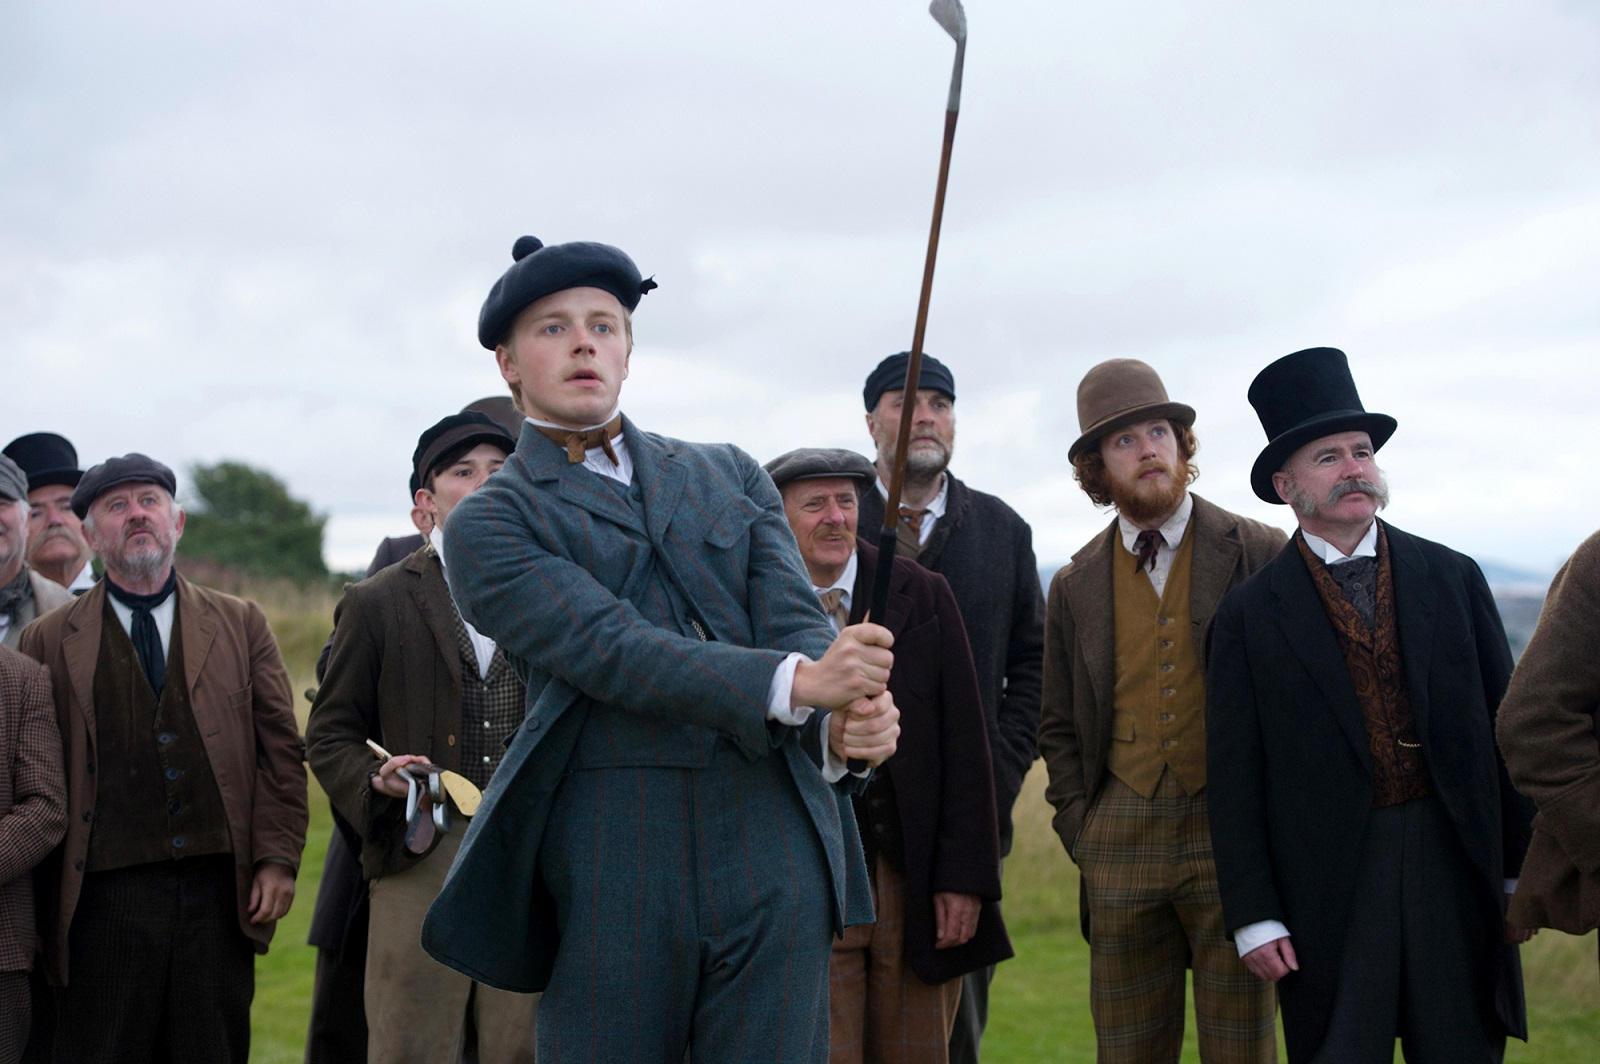 Jack Lowden as Young Tom Morris in 'Tommy's Honour.' (Neil Davidson, Roadside Attractions)